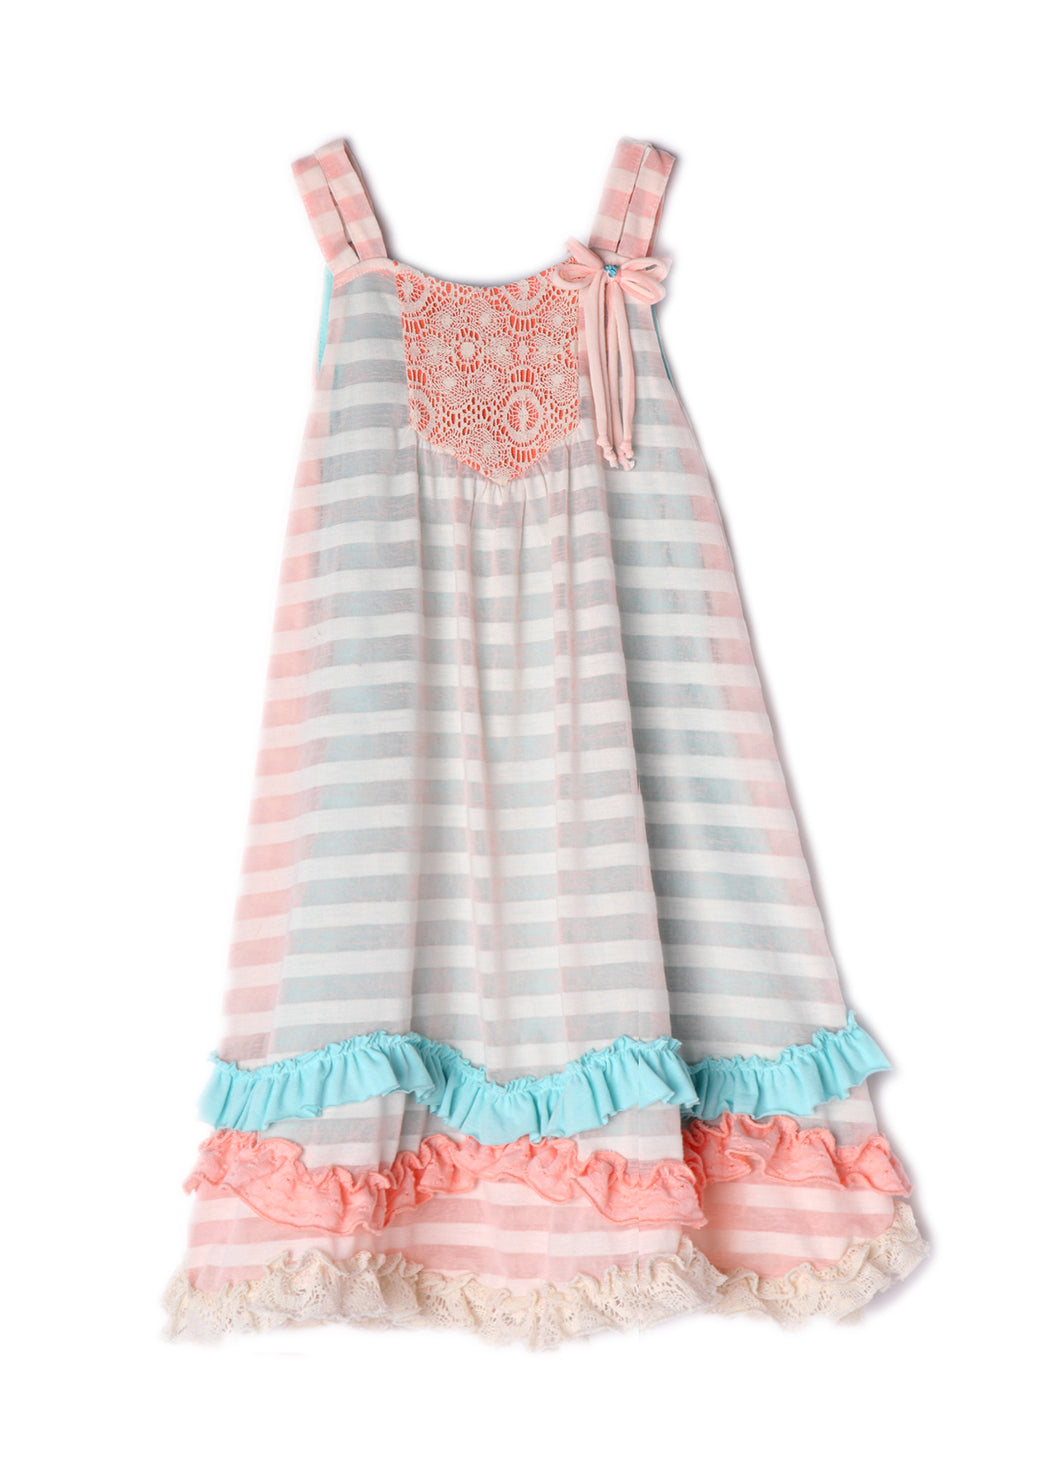 Isobella and Chloe Creamsicle Dress - Bloom Kids Collection - Isobella & Chloe